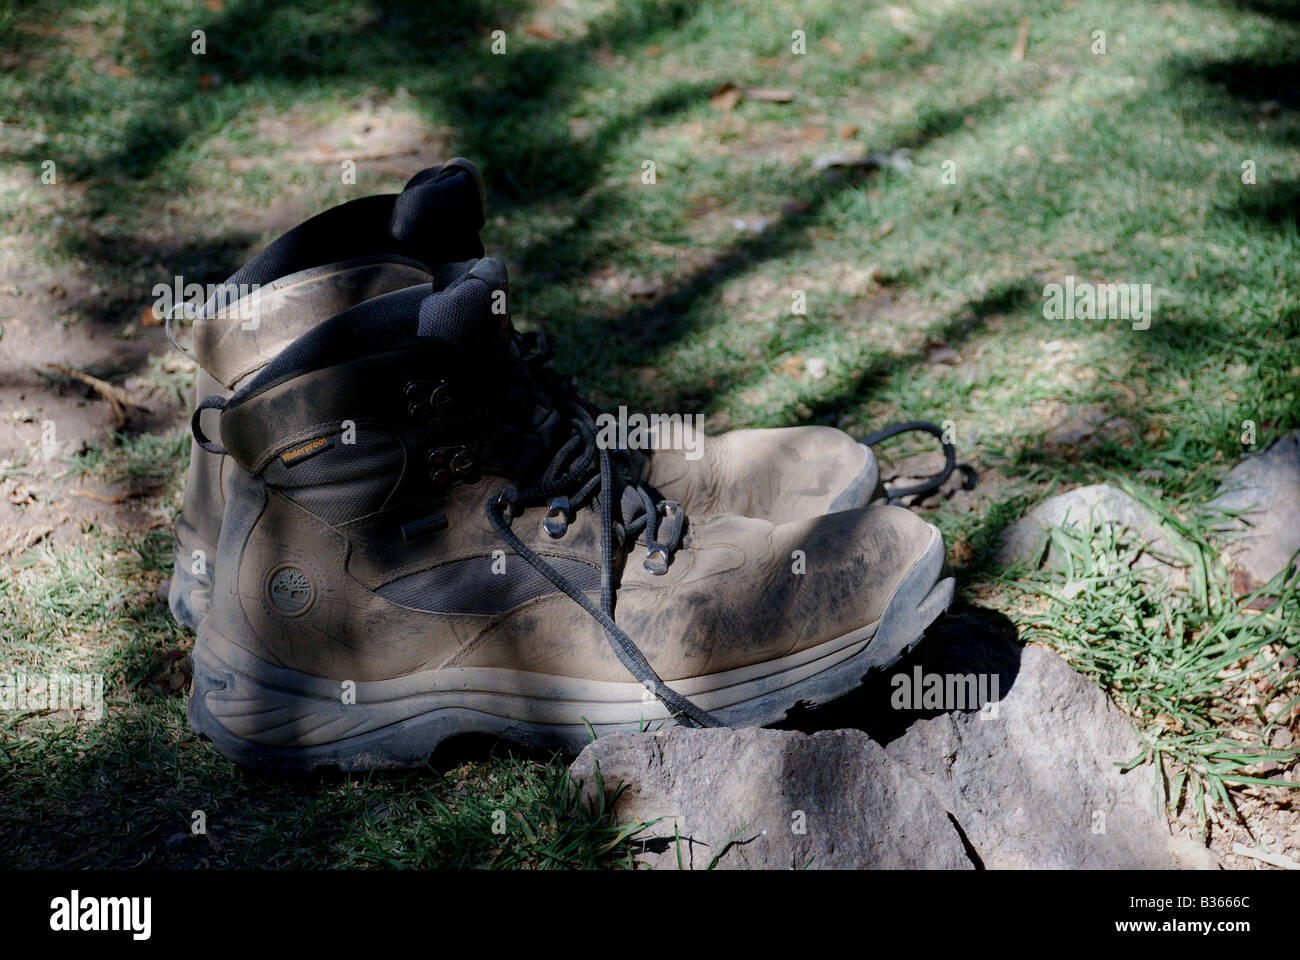 Worn out shoes sitting in sunlight after trek - Stock Image